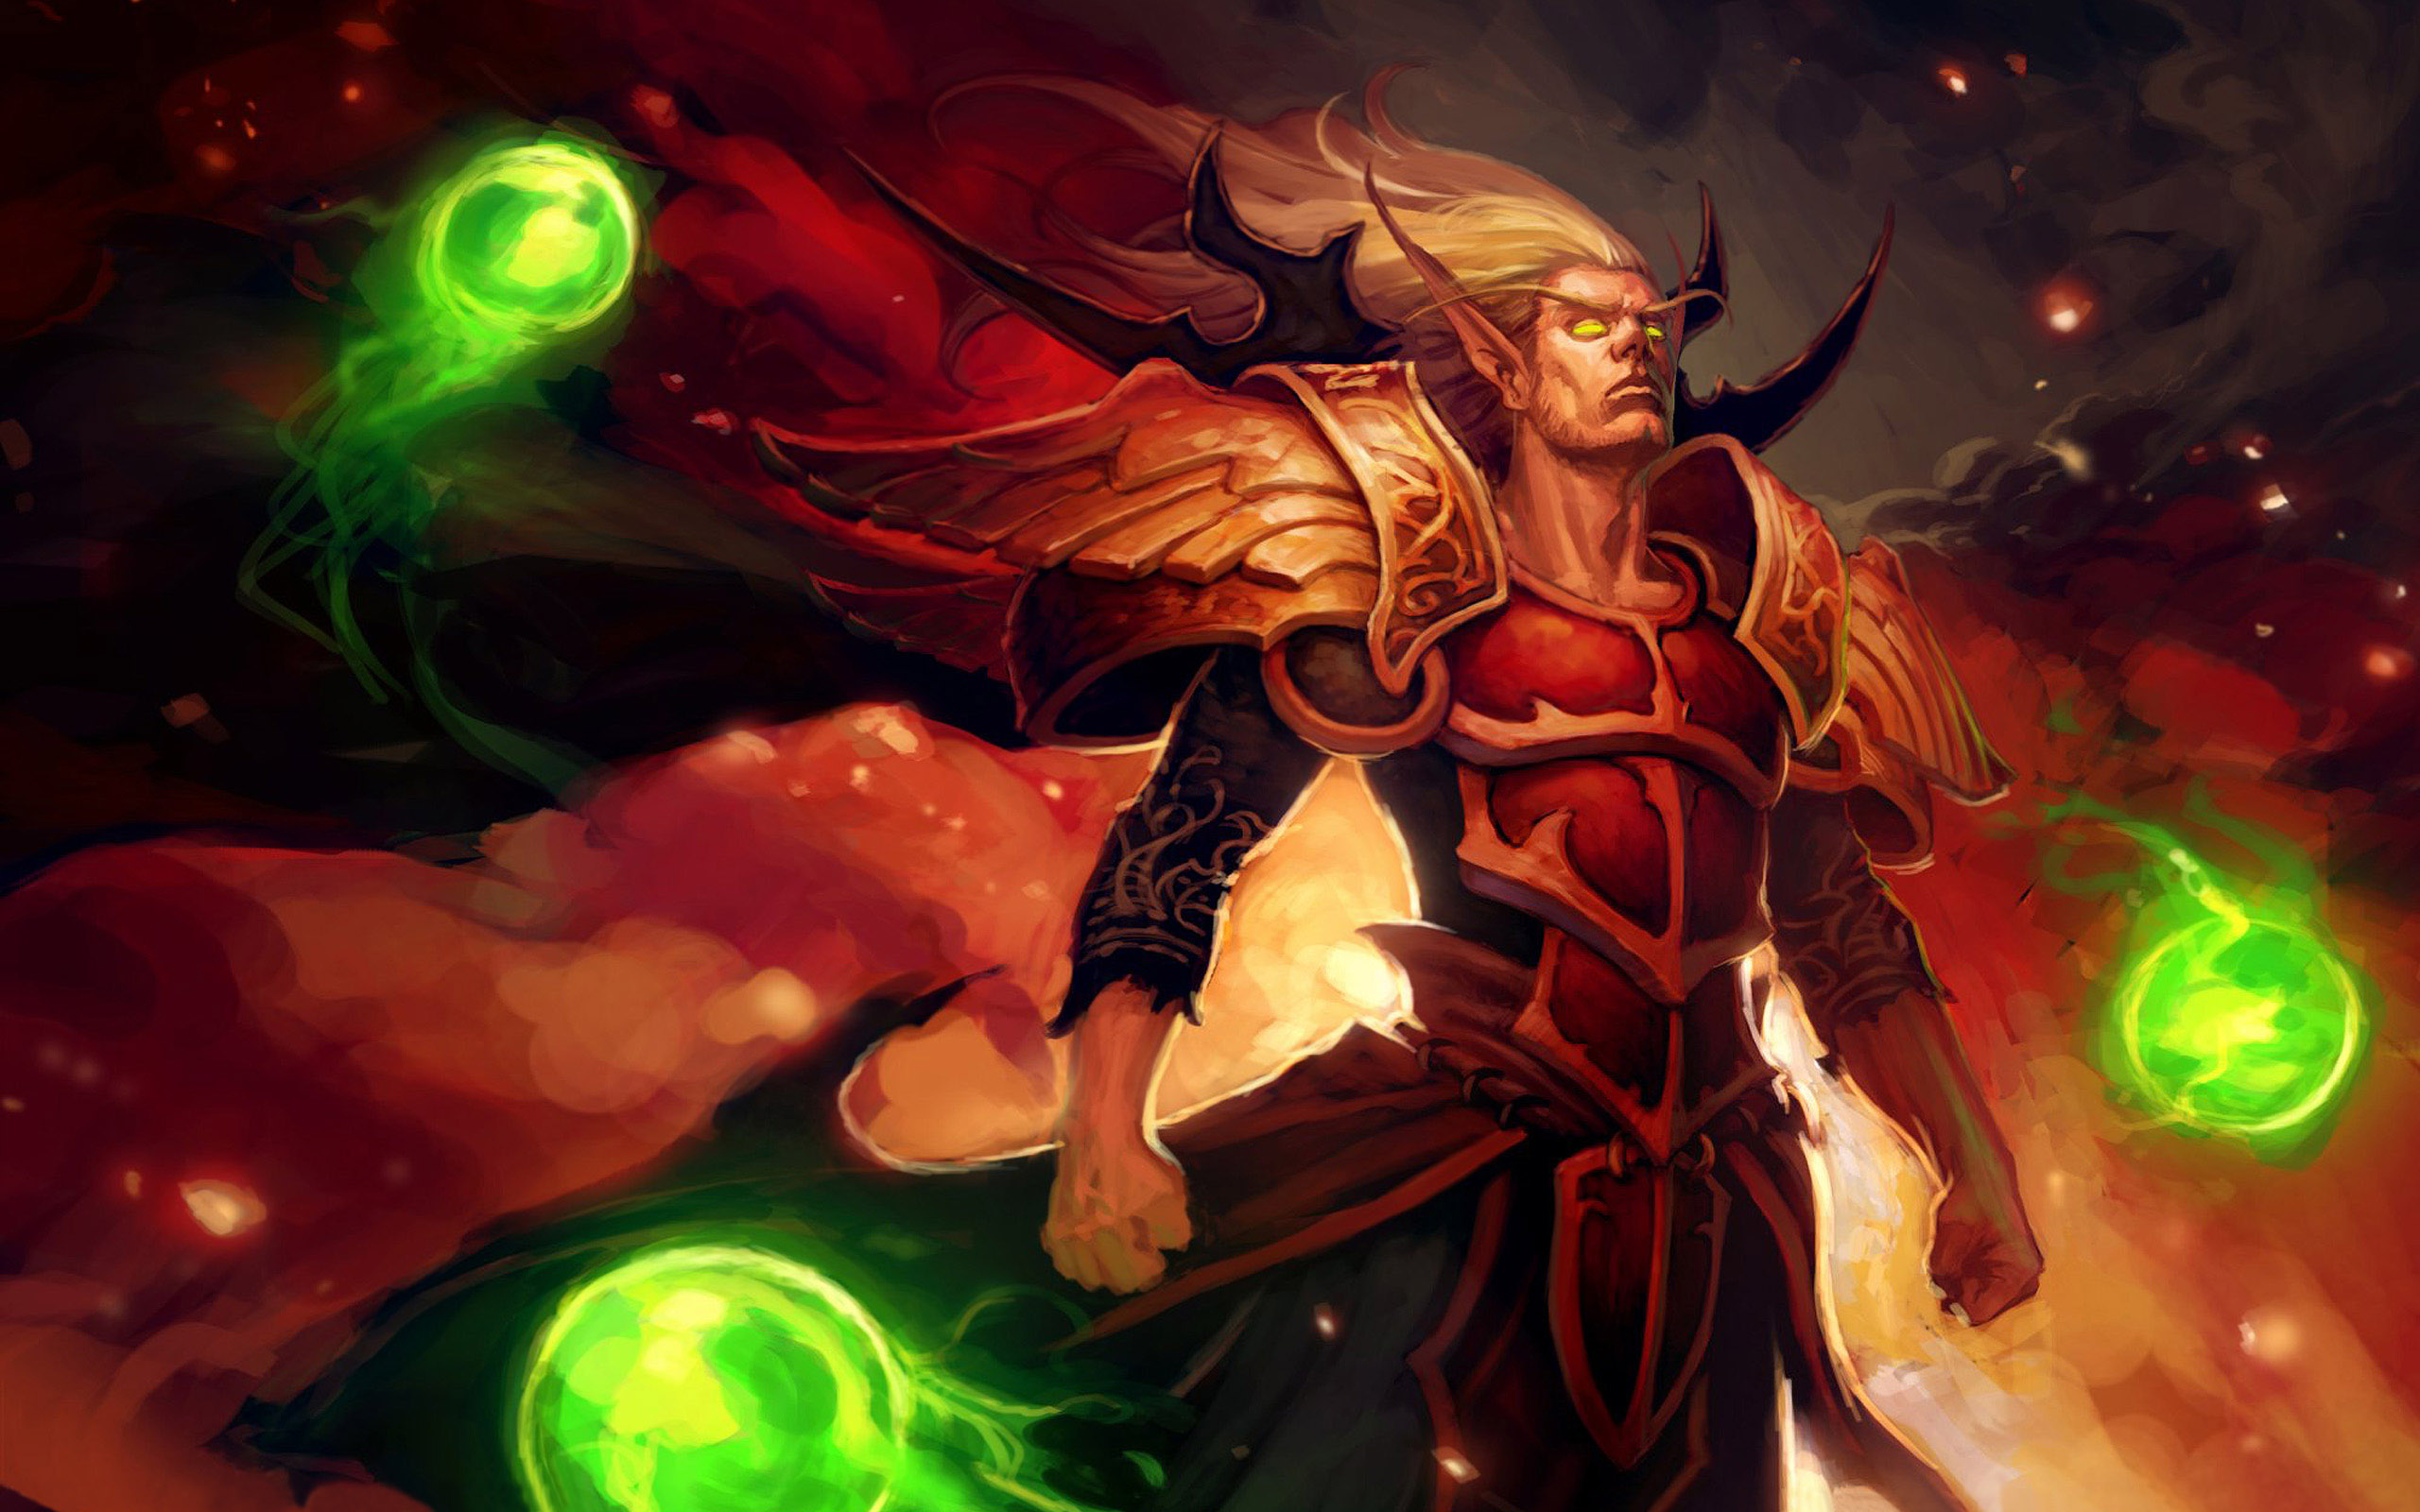 Video Game World Of Warcraft Kael'thas Sunstrider Blood Elf Wallpaper